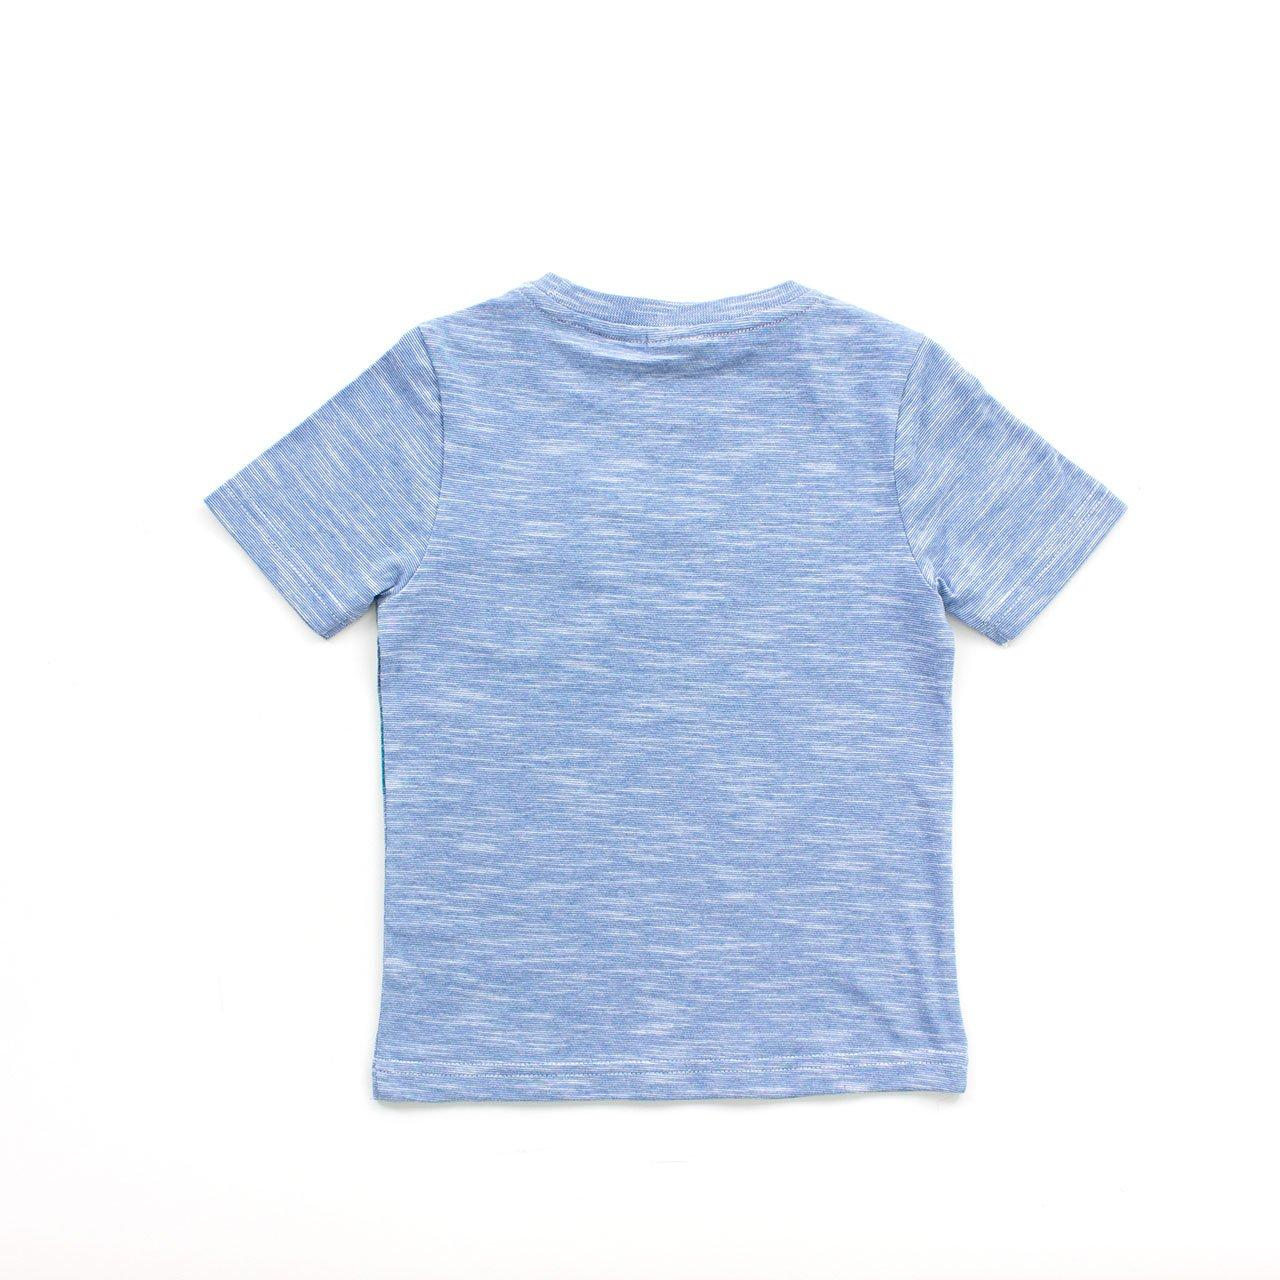 Boy, Short Sleeve Tee - Ethan Tee Boy